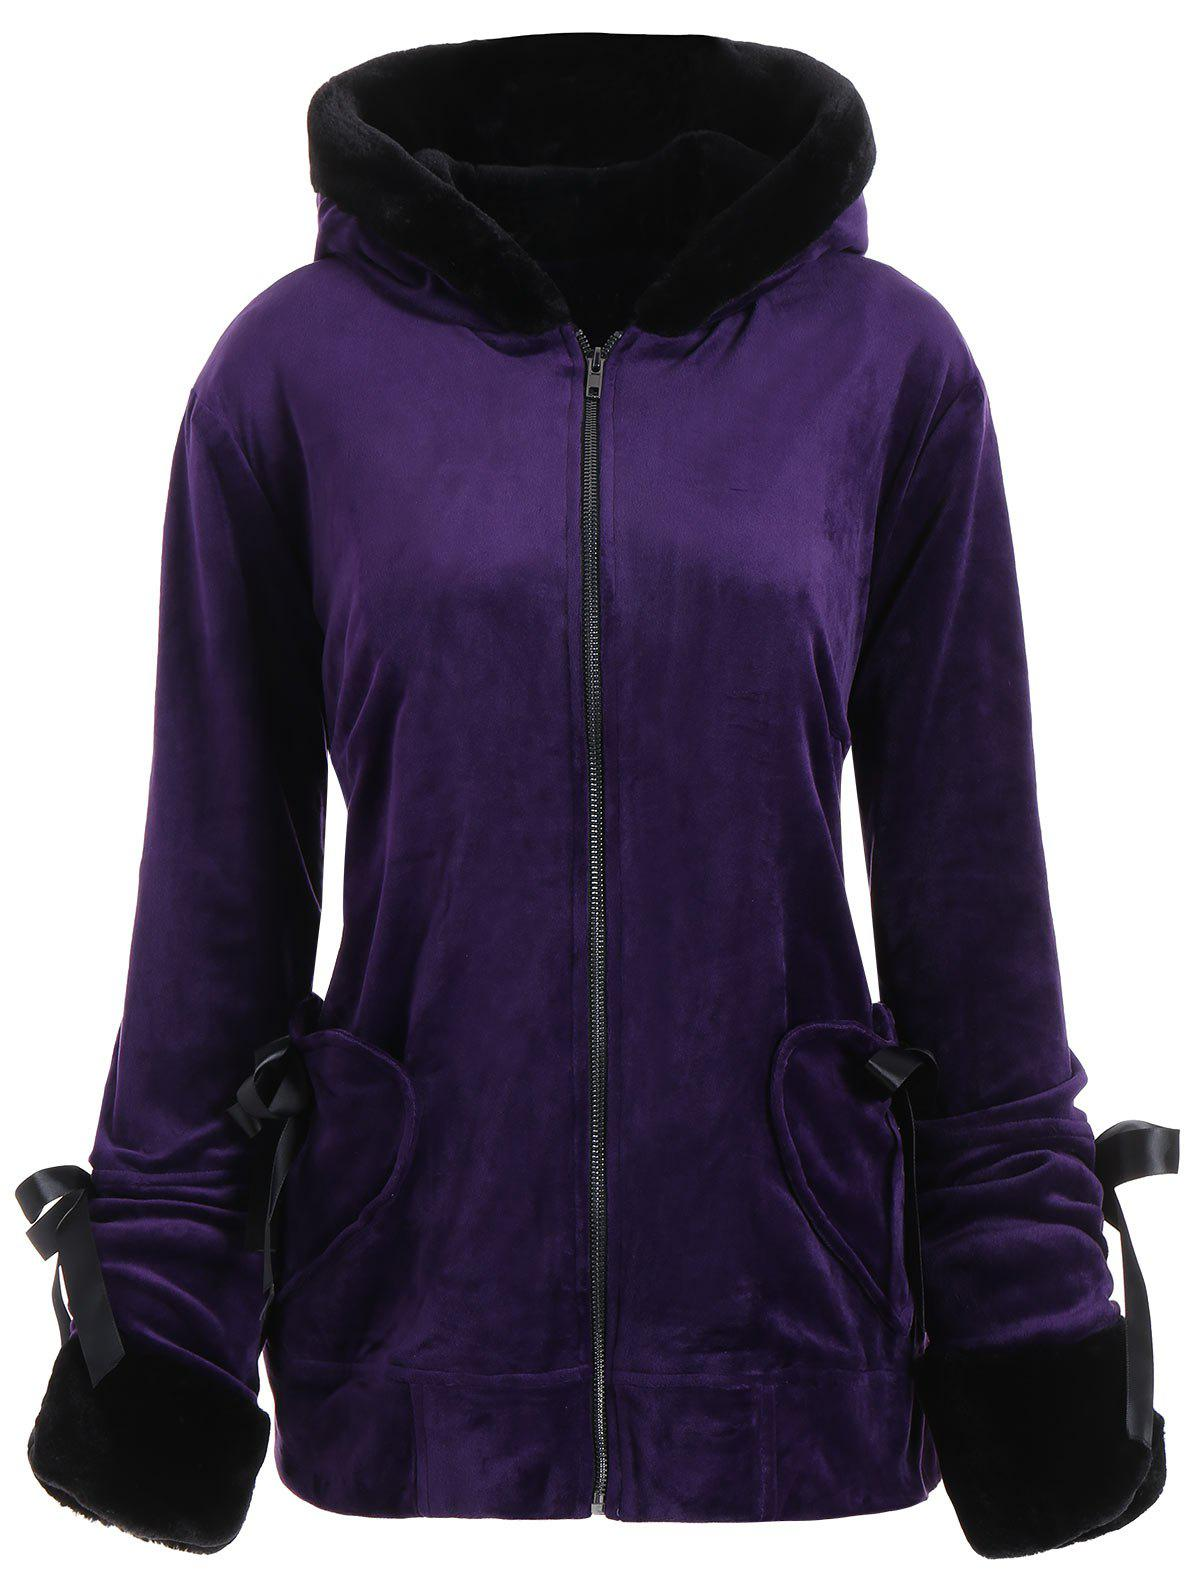 Hooded Heart Pockets Plus Size Velvet CoatWOMEN<br><br>Size: 5XL; Color: PURPLE; Clothes Type: Others; Material: Polyester,Spandex; Type: Slim; Shirt Length: Regular; Sleeve Length: Full; Collar: Hooded; Pattern Type: Others; Style: Fashion; Season: Fall,Winter; Weight: 0.5700kg; Package Contents: 1 x Coat;